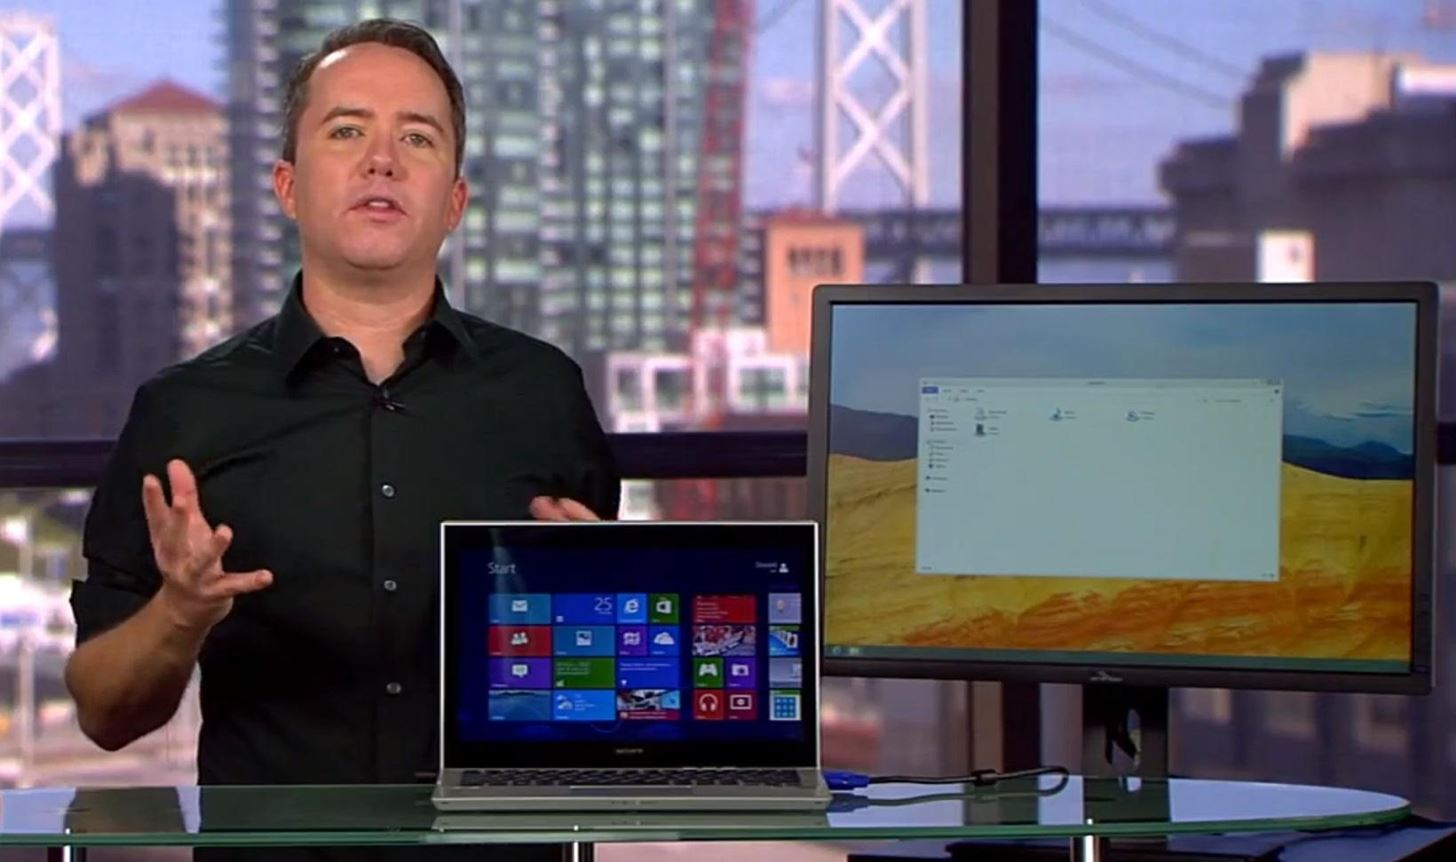 How to Run Windows 8's Desktop and Metro Views Simultaneously Using a Second Monitor